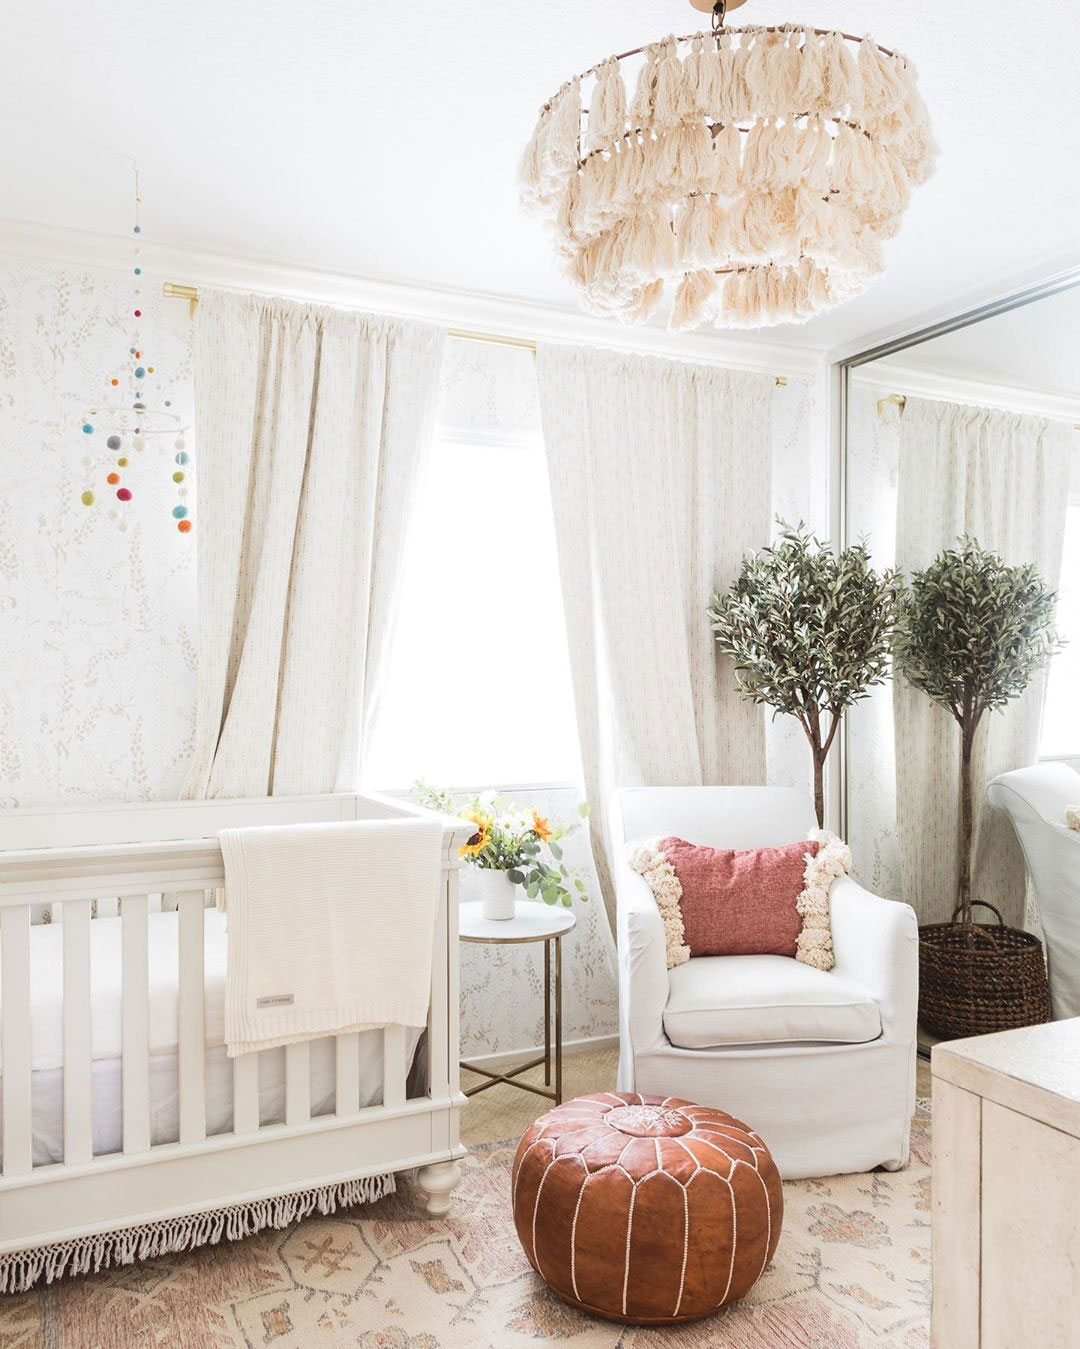 Natural Baby Nursery Design Reveal: HOW TO BRING A NATURAL VIBE TO THE NURSERY